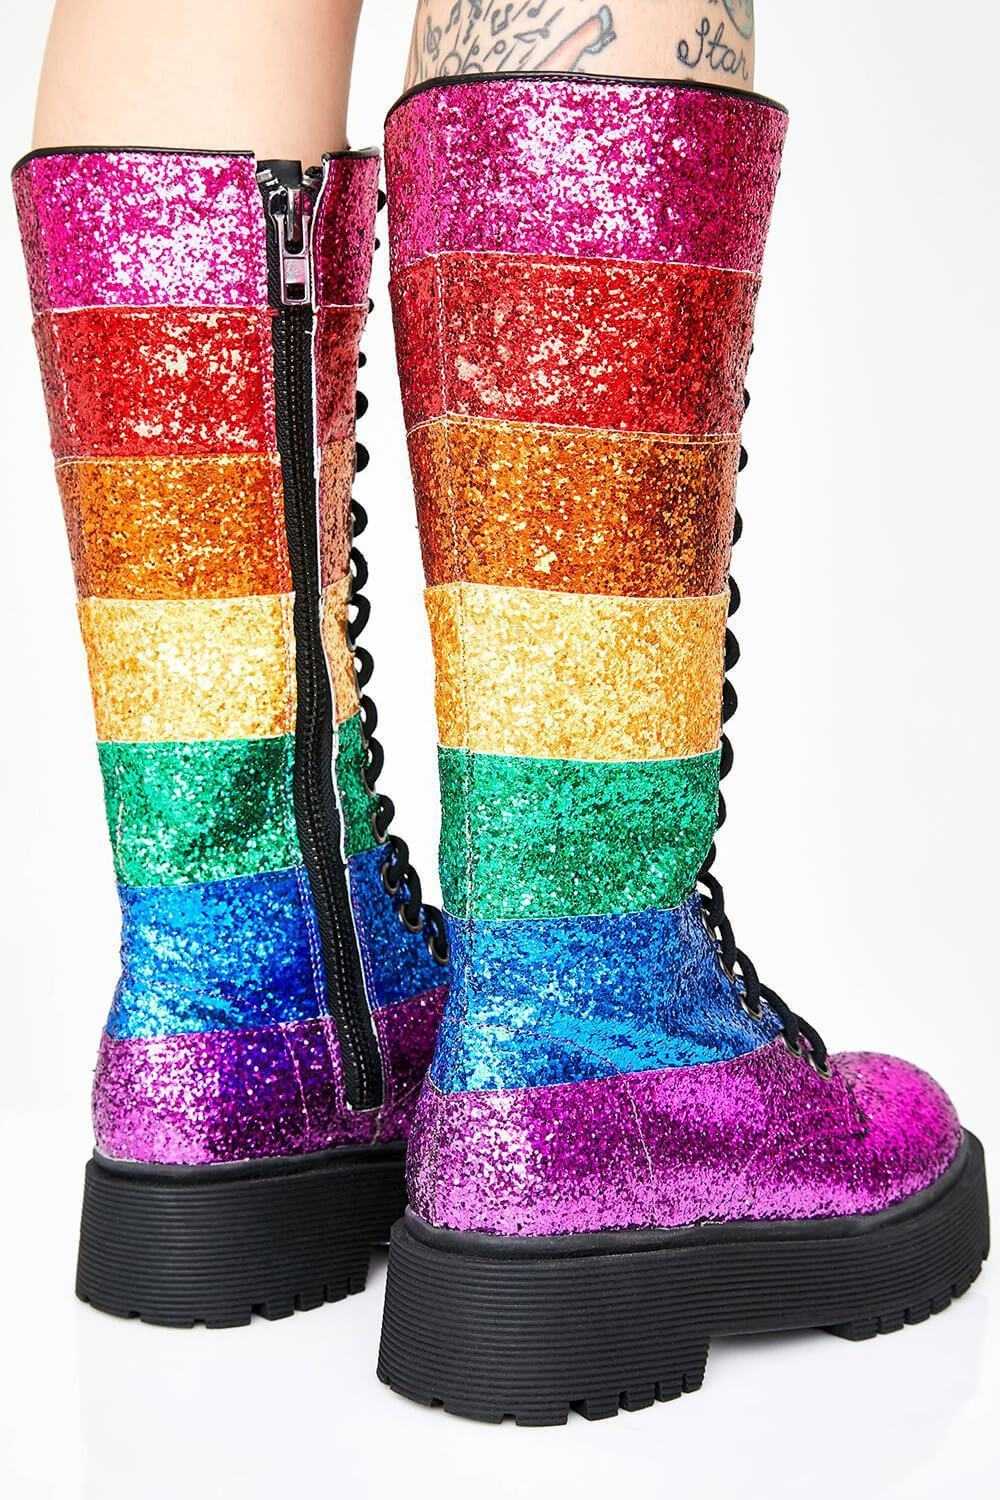 Rainbow Glitter Lace Up Knee High Platform Chunky Boots (4258899329083)